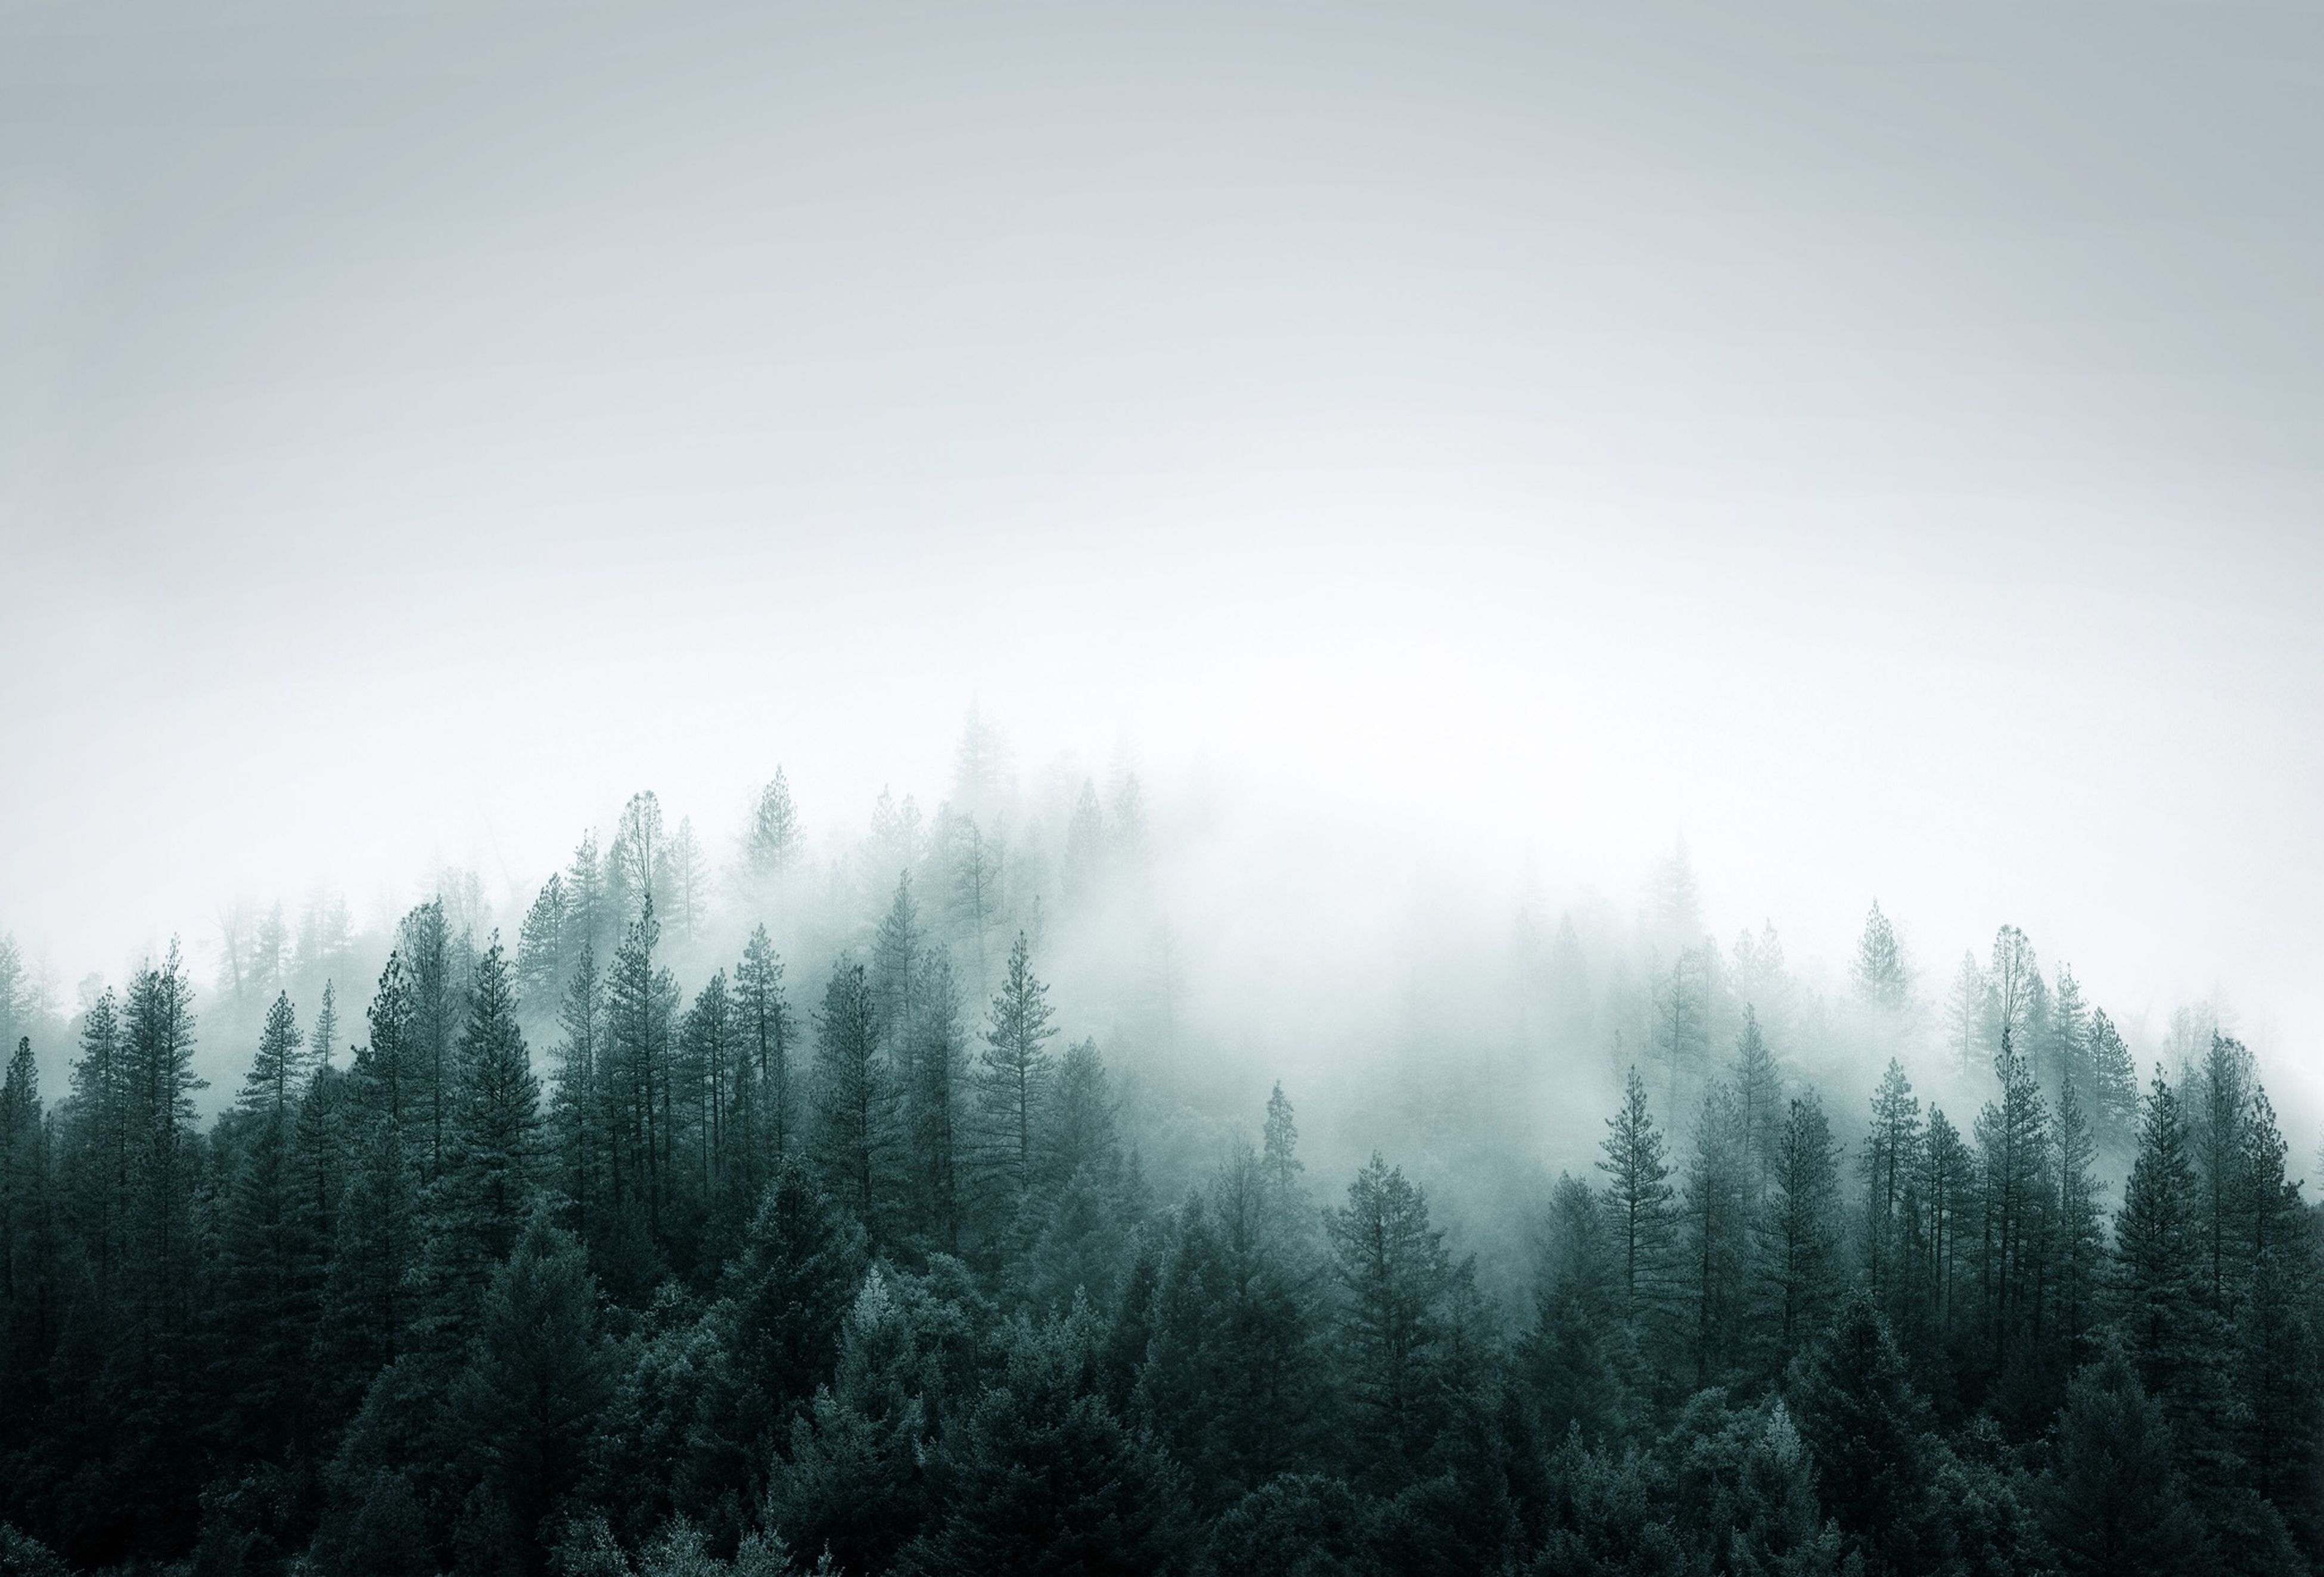 Idyllic View Of Trees During Foggy Weather